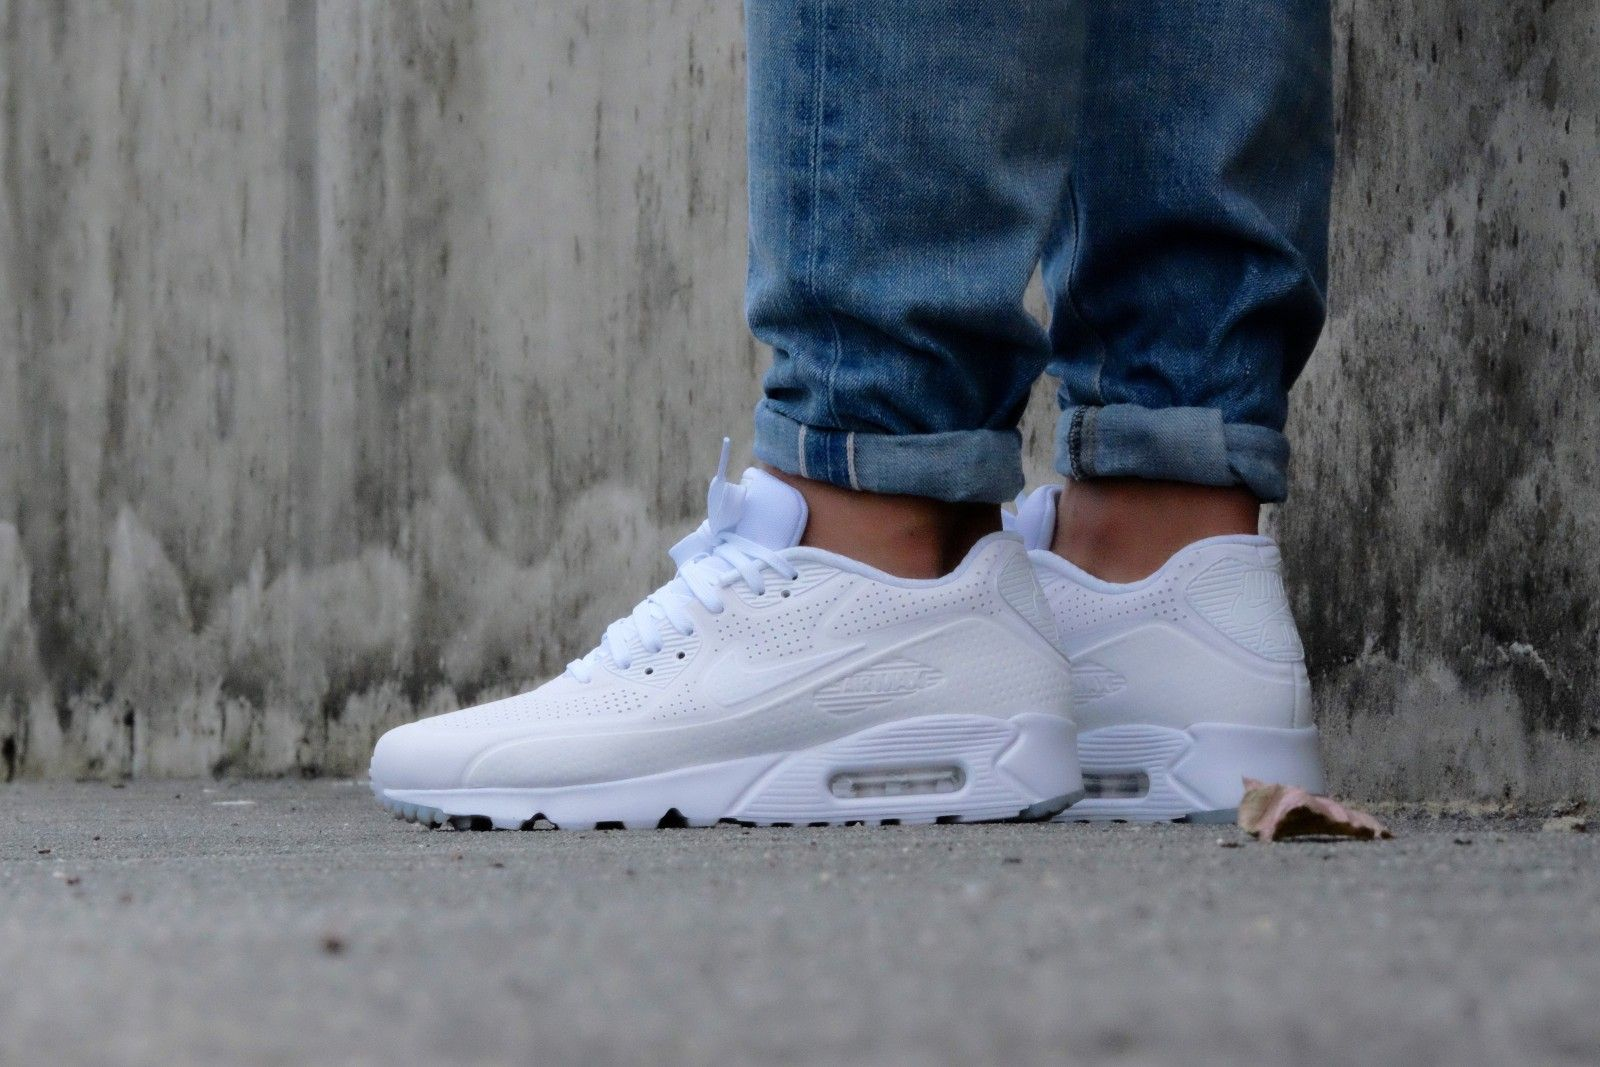 b6e2d76d Nike Air Max 90 Ultra Moire Triple White - 819477-111 | Stylish Eve ...